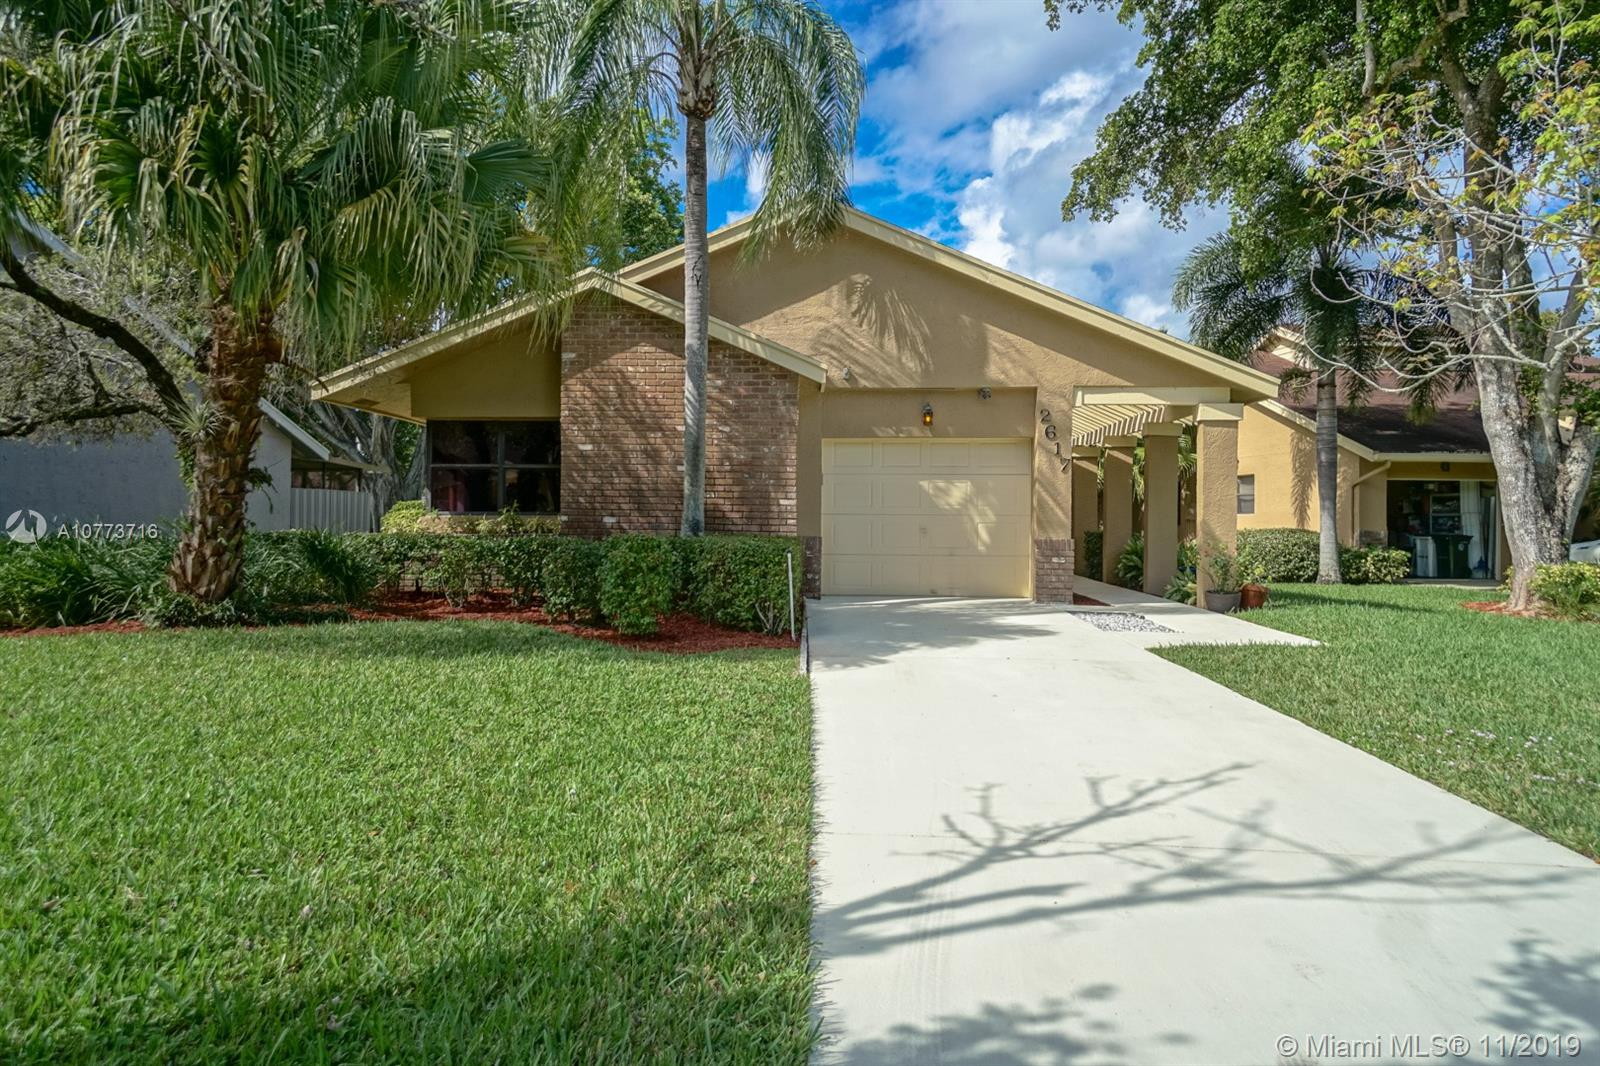 BEAUTIFUL HOME NESTED IN THE HEART OF COCONUT CREEK. 3 BEDS 2 BATHS. LARGE SCREENED PATIO W/ROLL UP SHUTTERS. ONE CAR GARAGE. WALK IN CLOSET IN MASTER BED. VAULTED CEILING. ASSOCIATION ALLOWS 2 SMALL PETS. 55 AND OVER COMMUNITY.